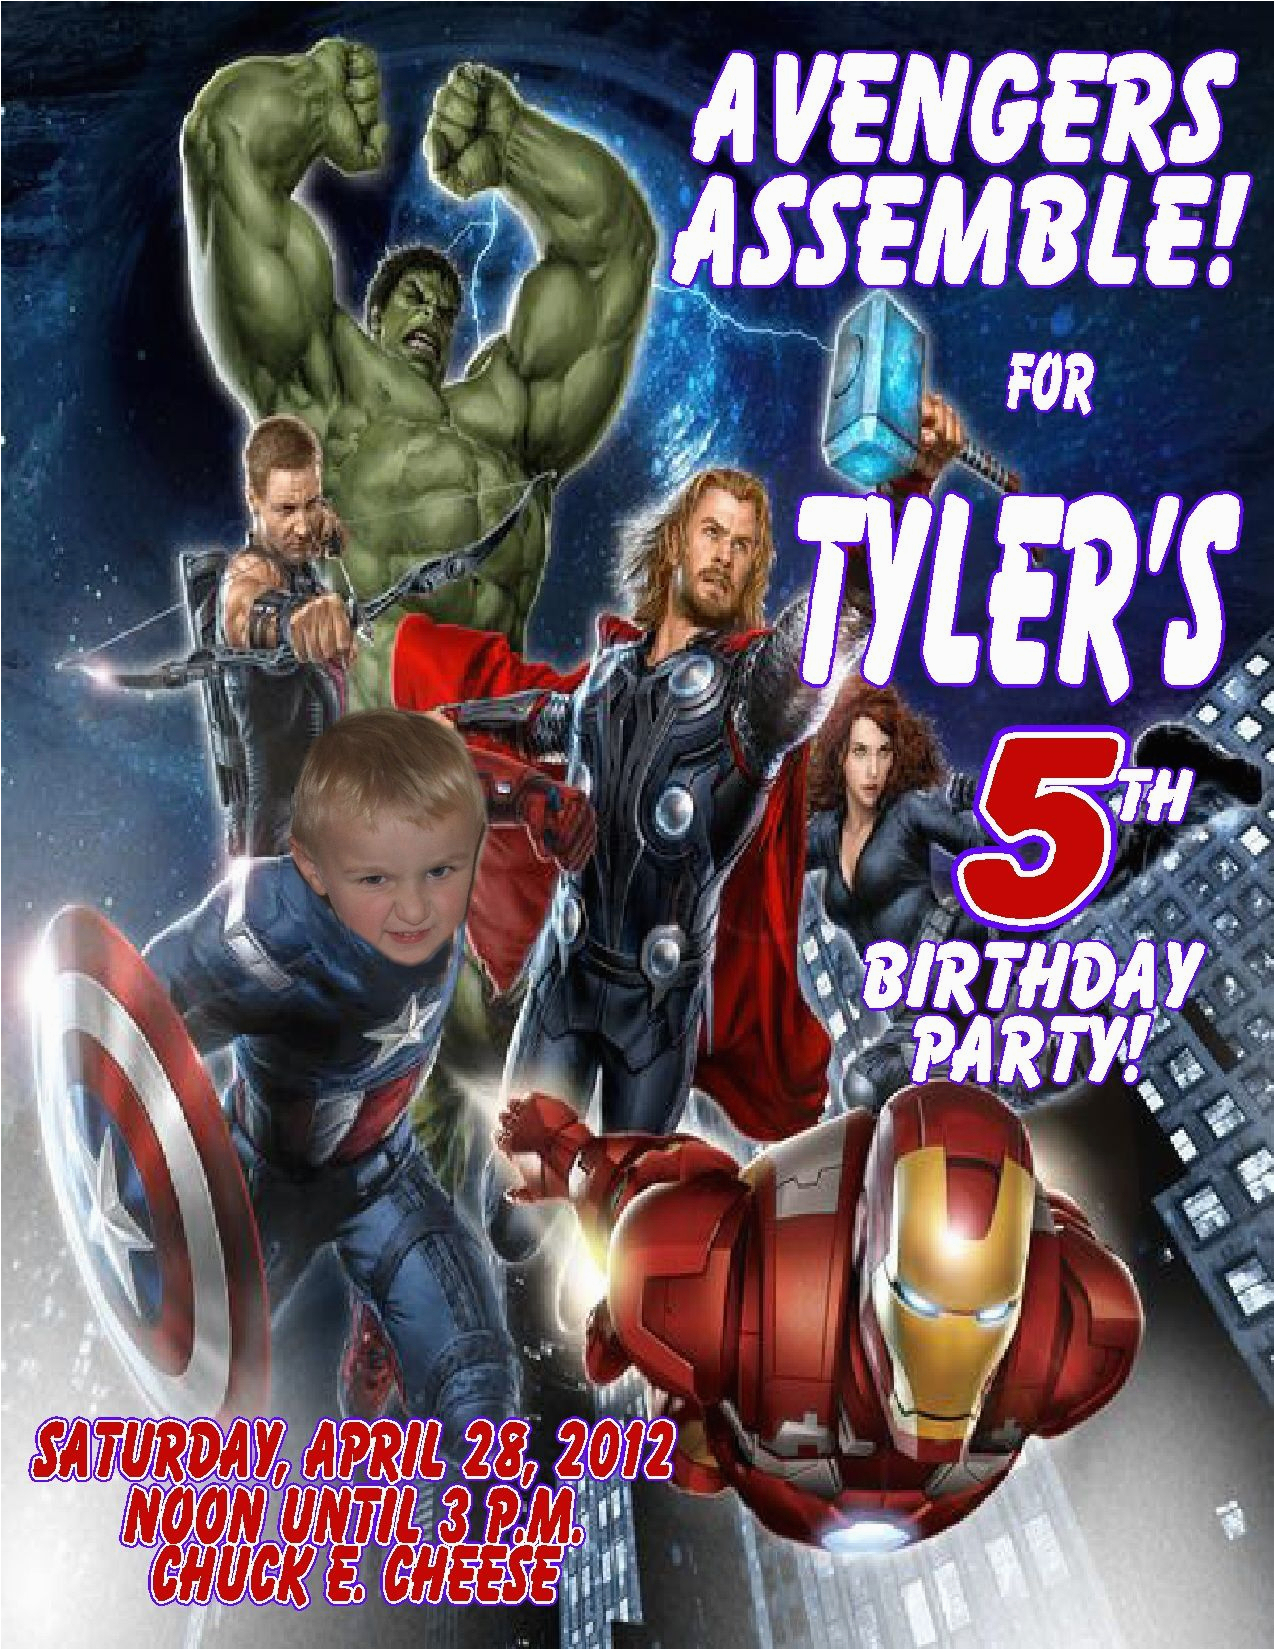 Avengers Birthday Invitation Templates Free | Birthdaybuzz - Avengers Party Invitations Printable Free